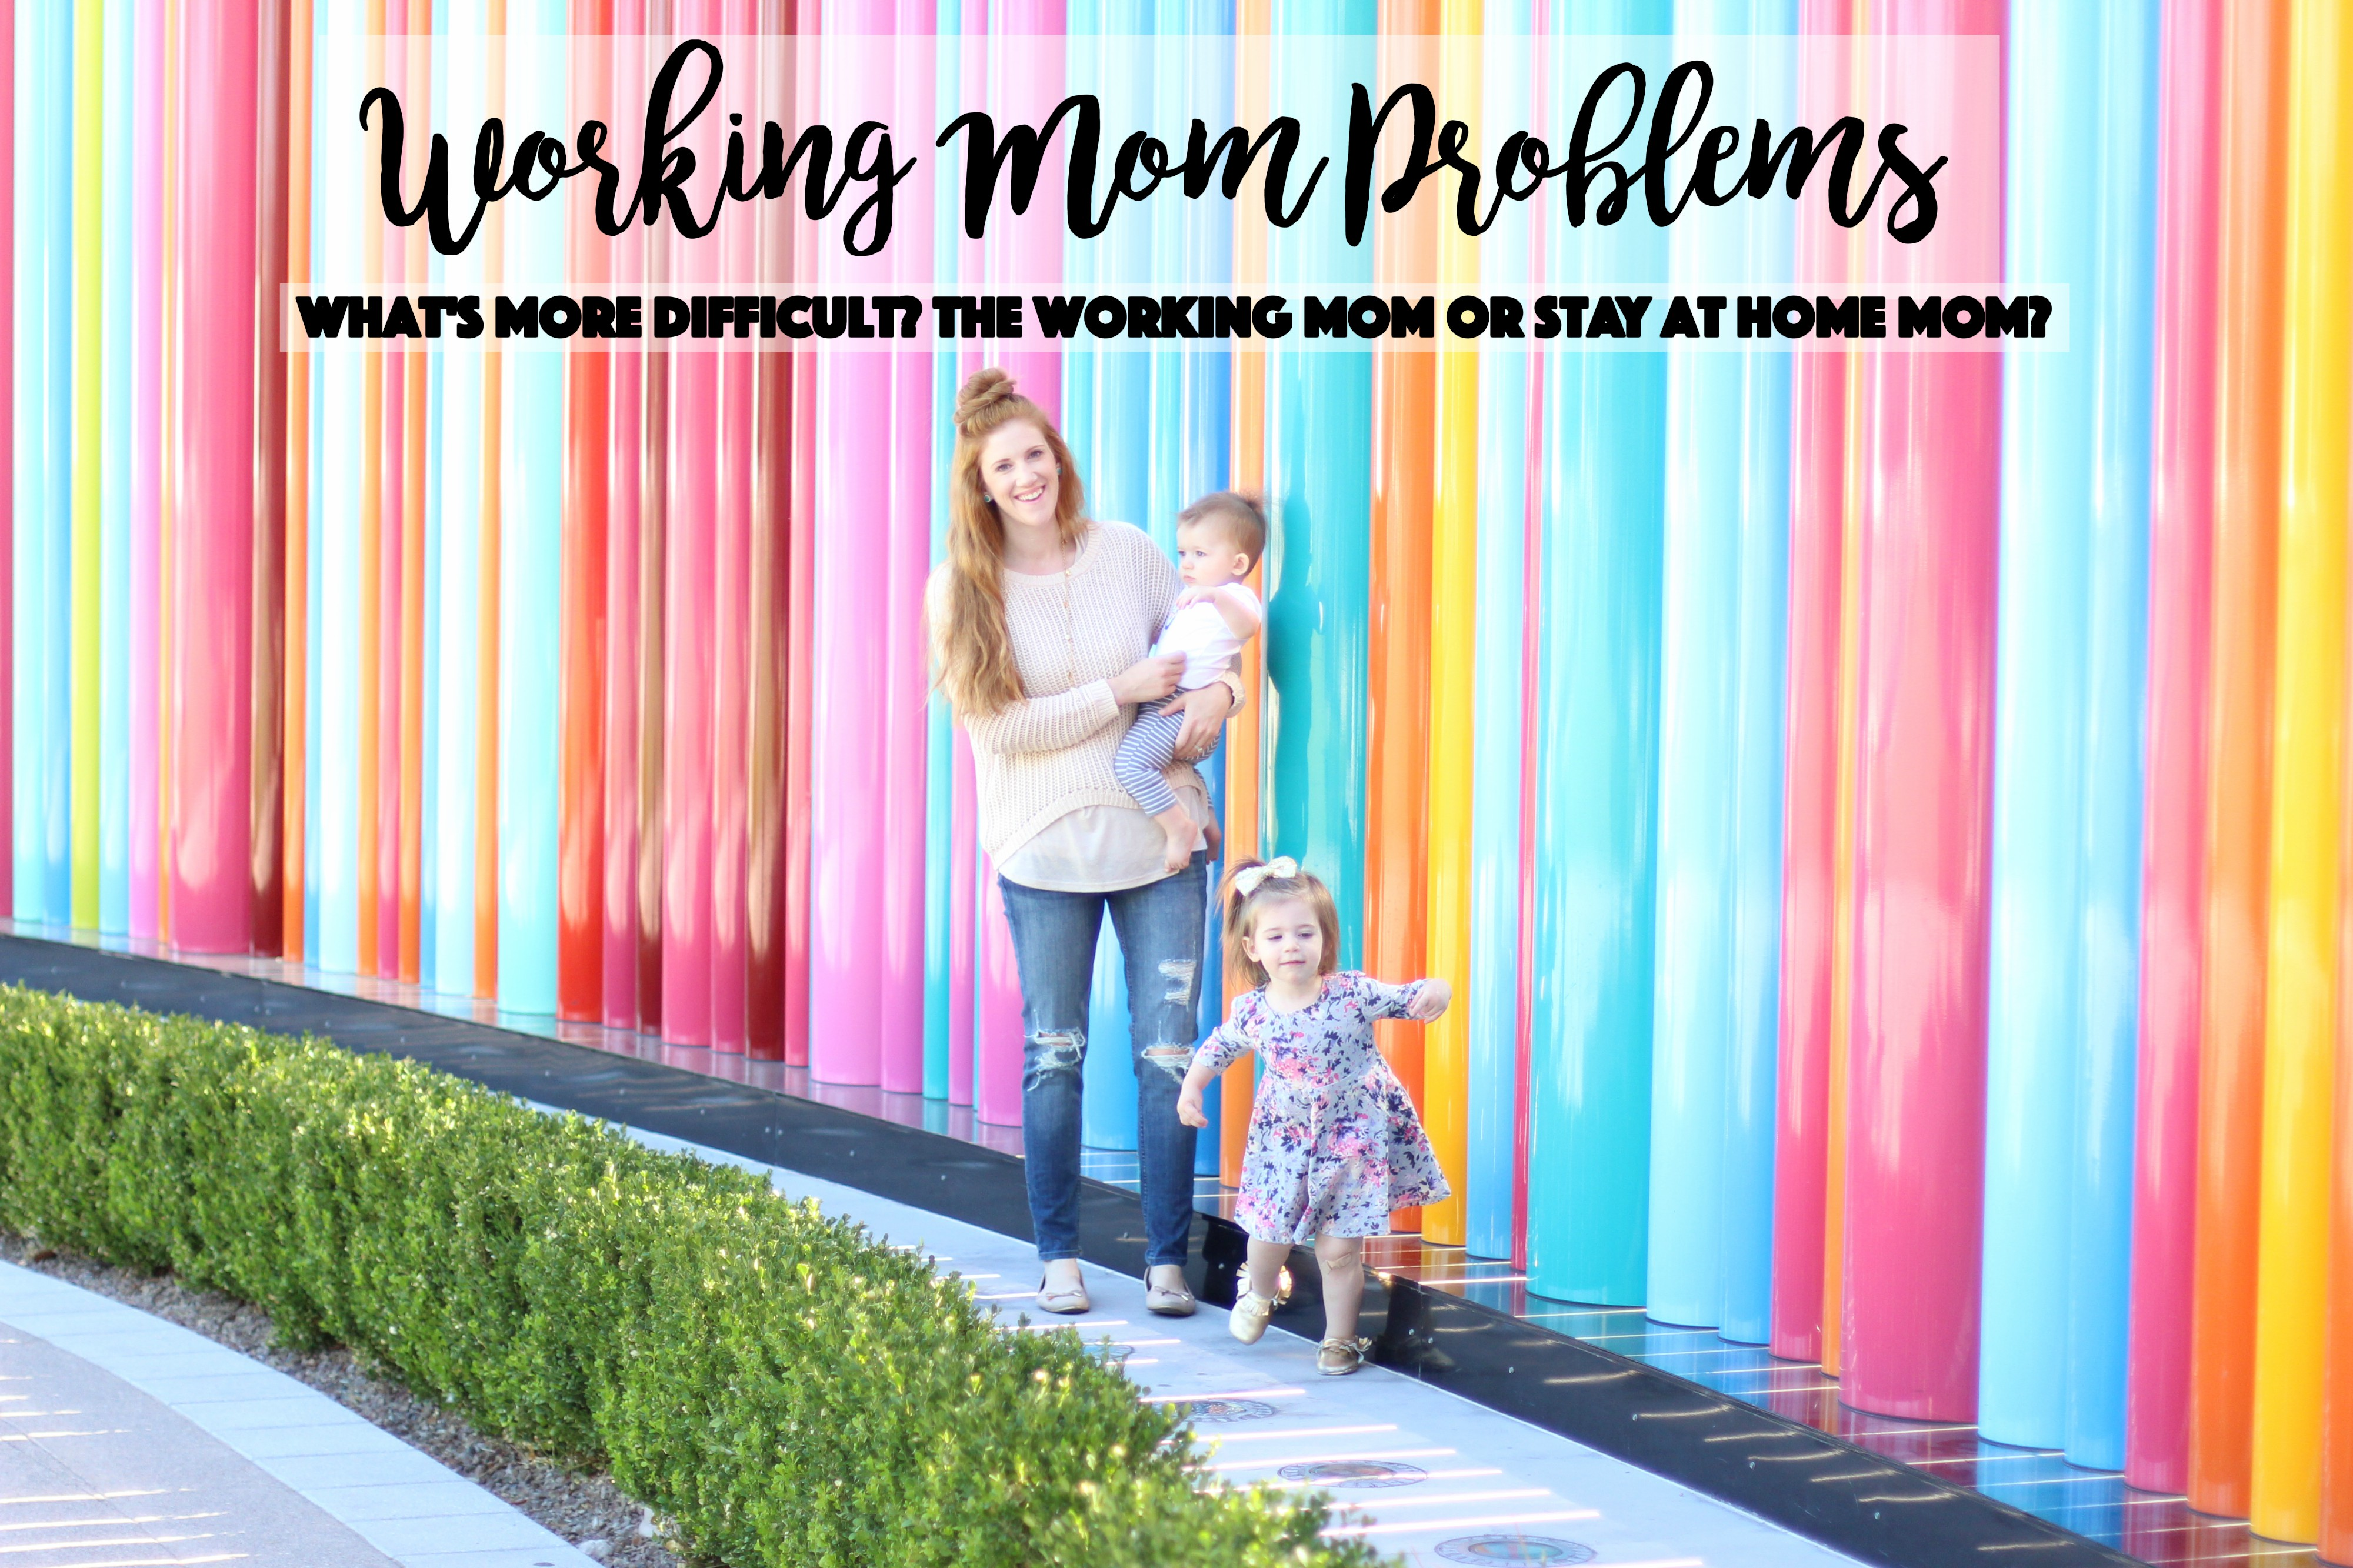 Working Mom Problems